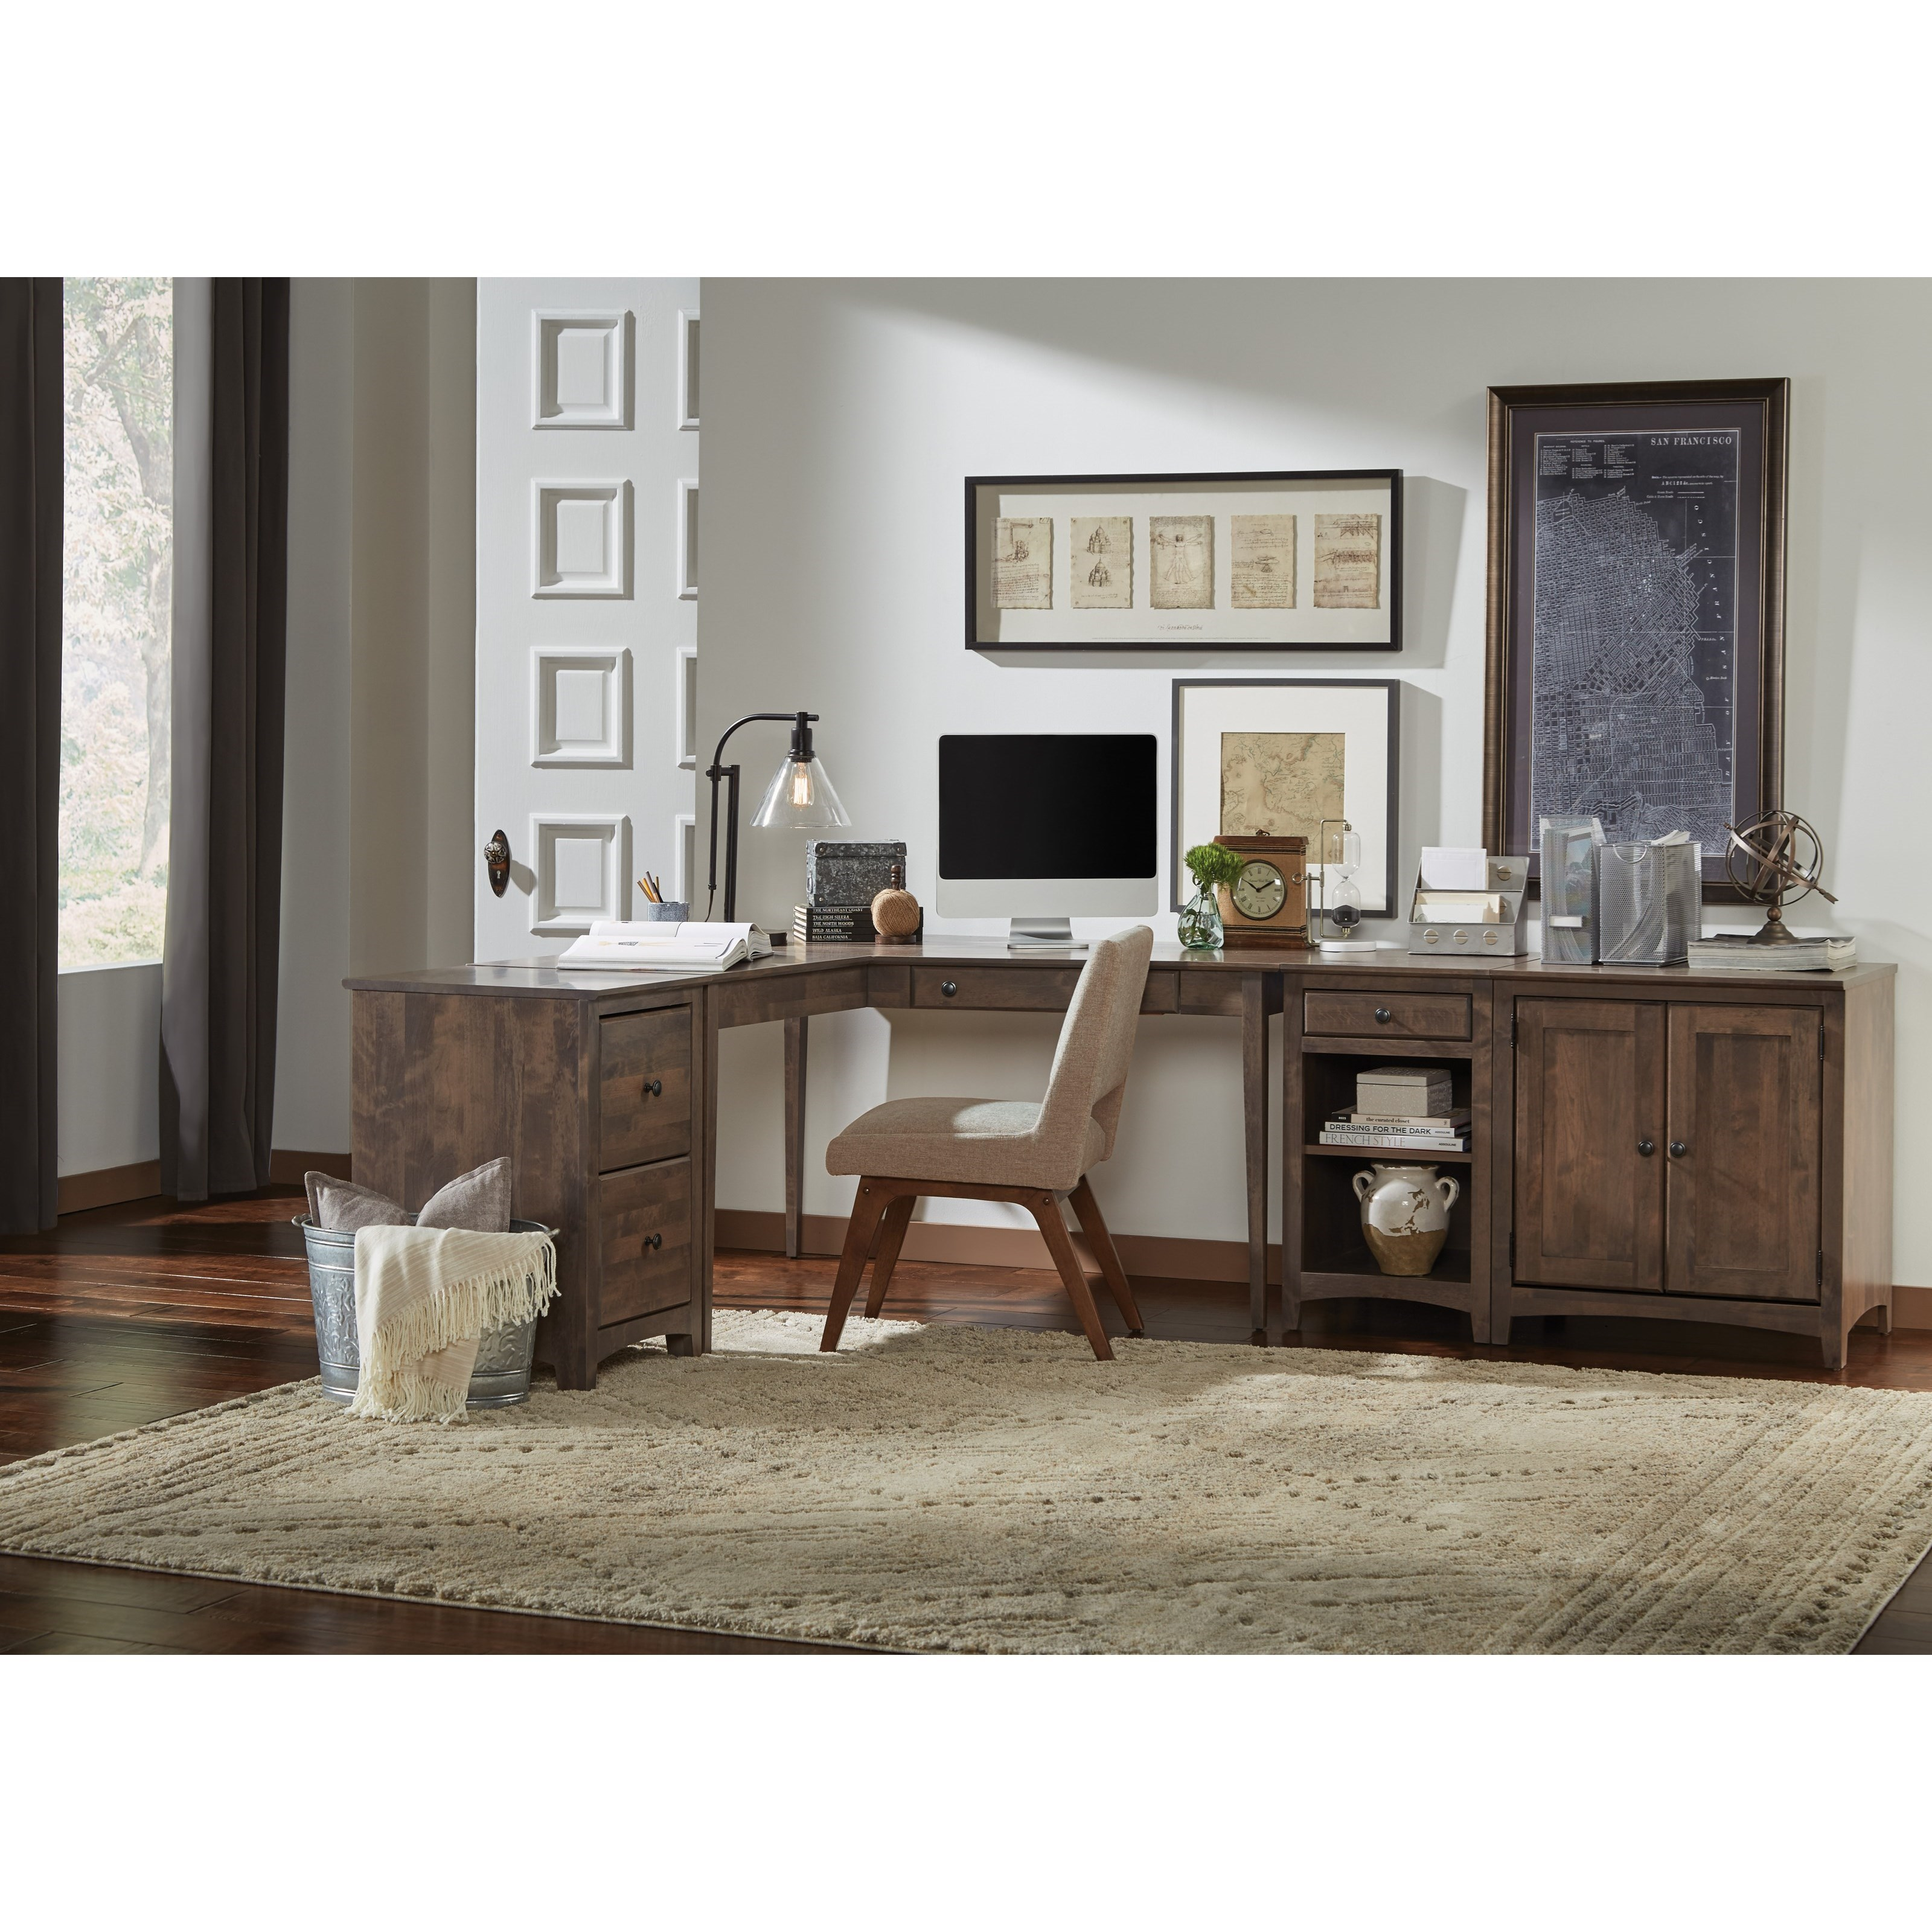 Modular Home Office Modular Home Office Group by Archbold Furniture at Mueller Furniture